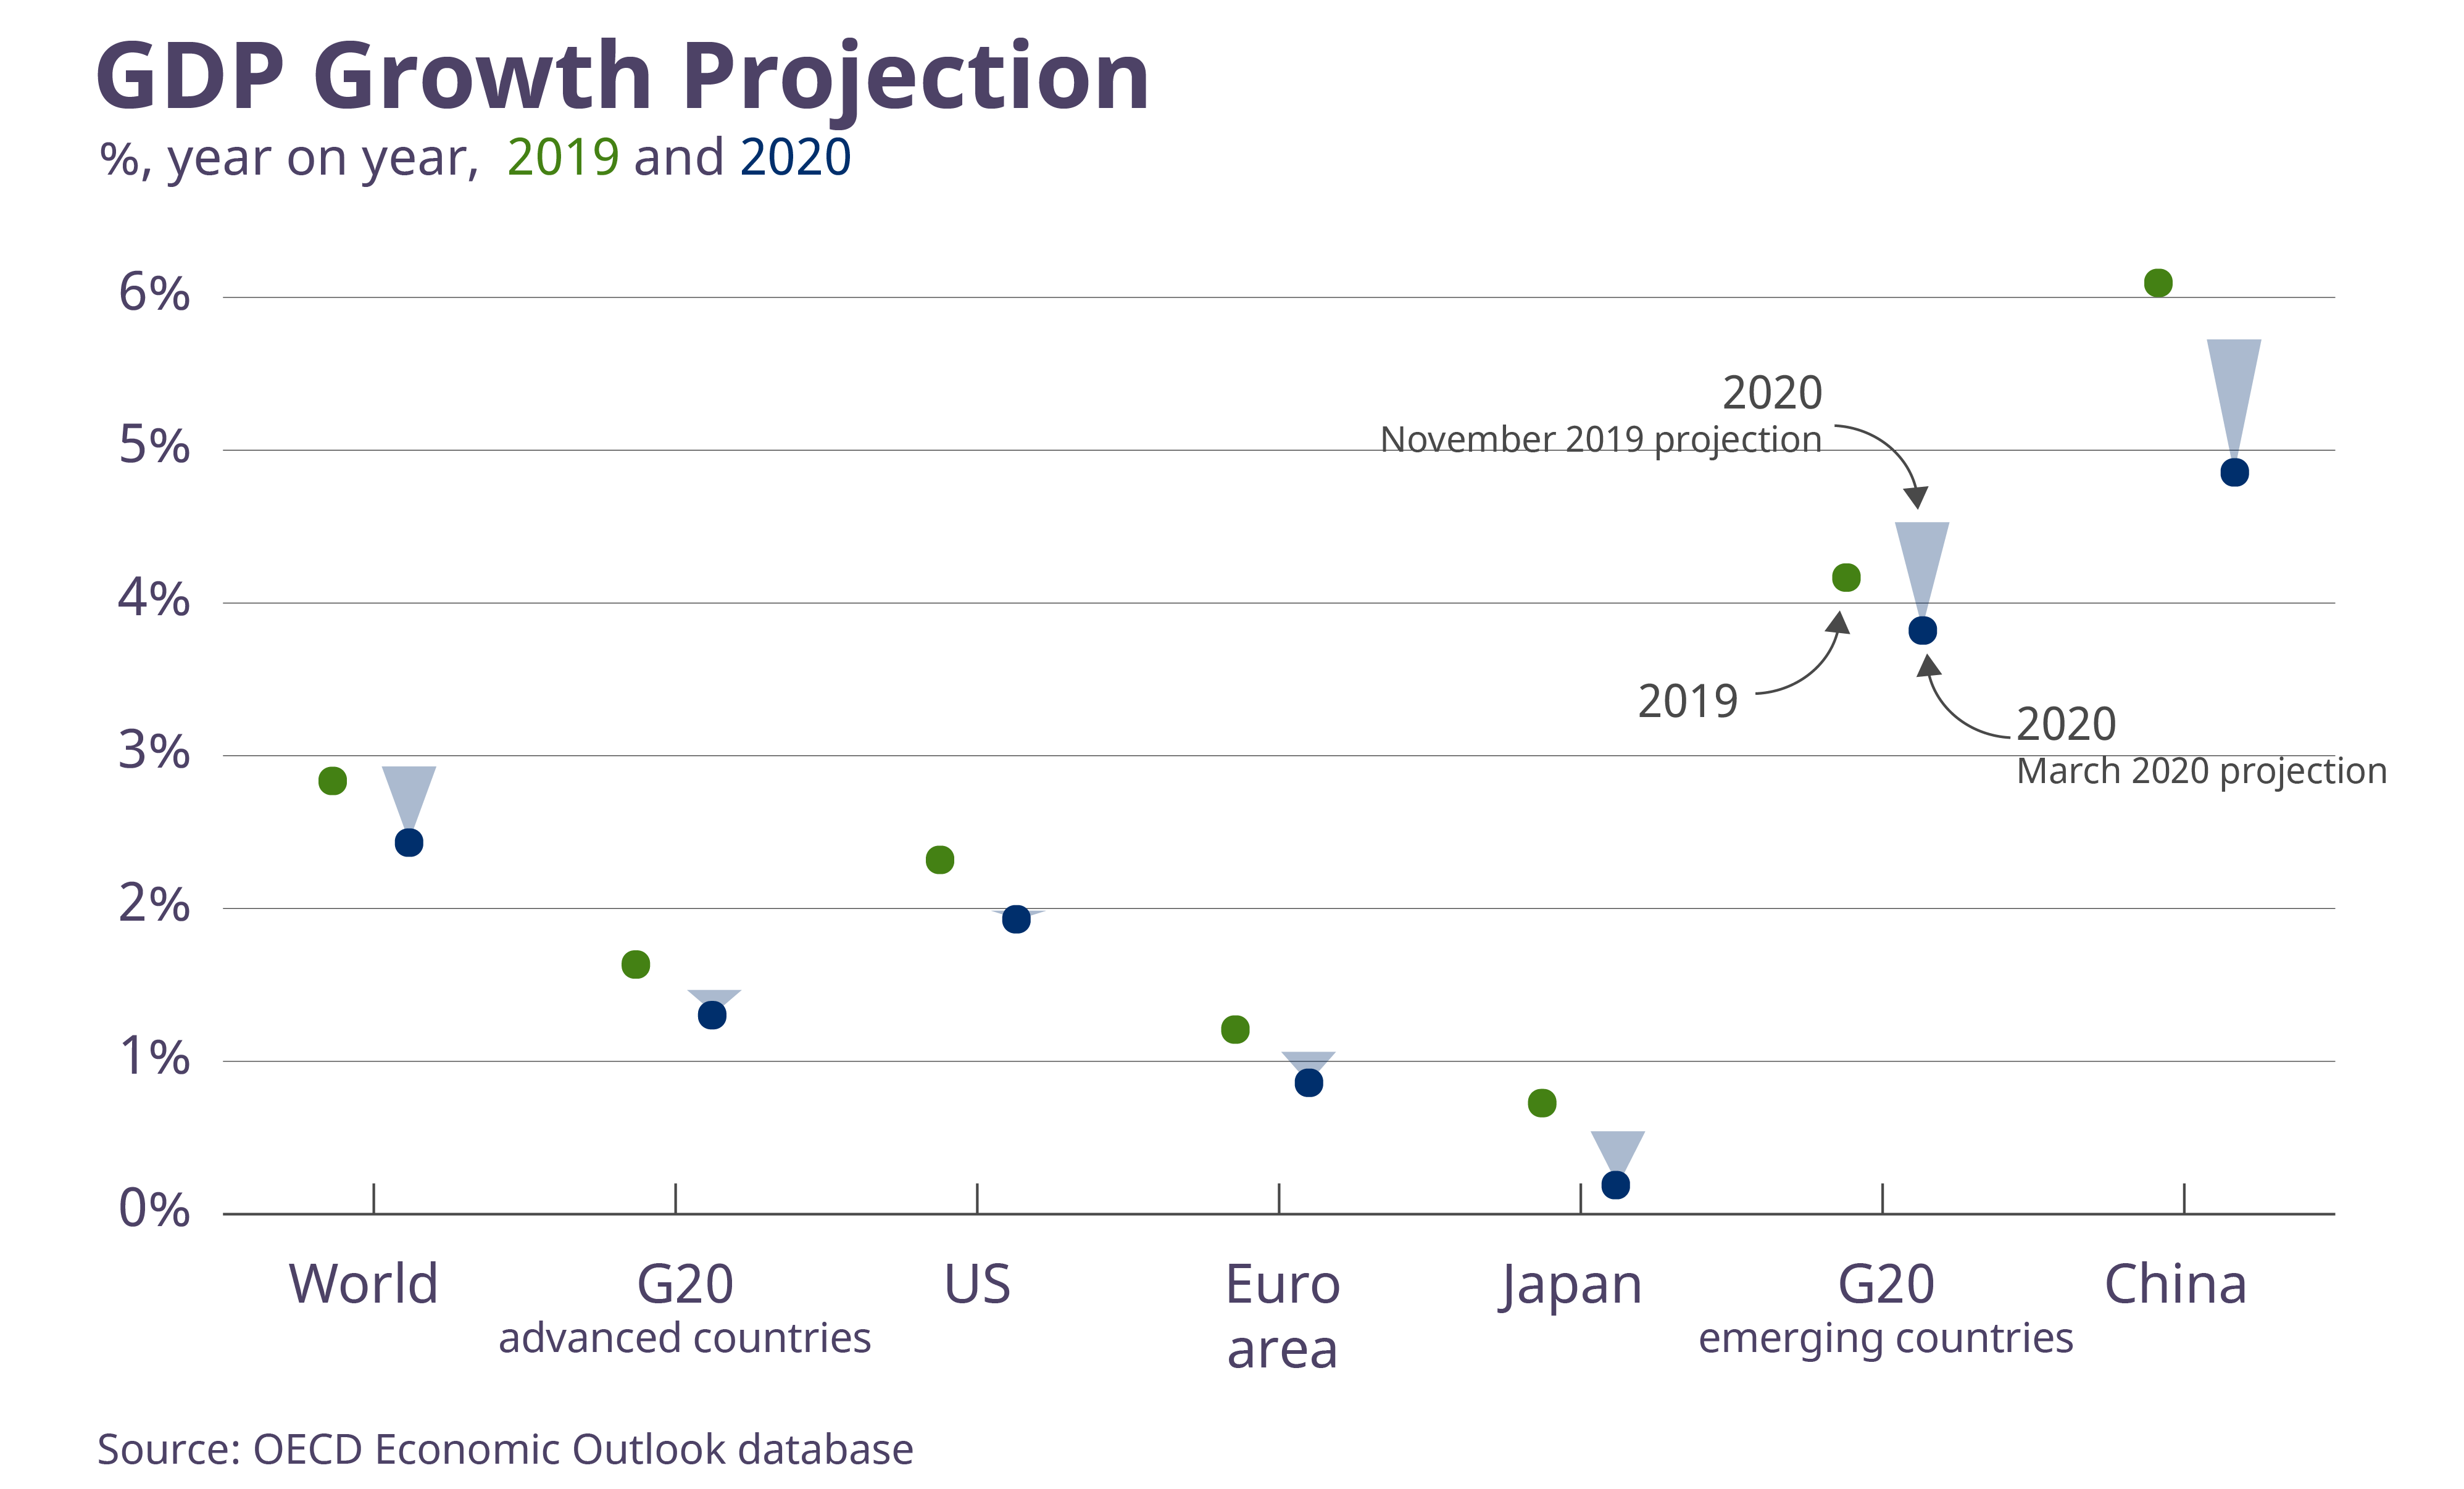 GDP Growth Projection, Organisation for Economic Co-operation and Development, OECD Economic Outlook, Interim Report March 2020